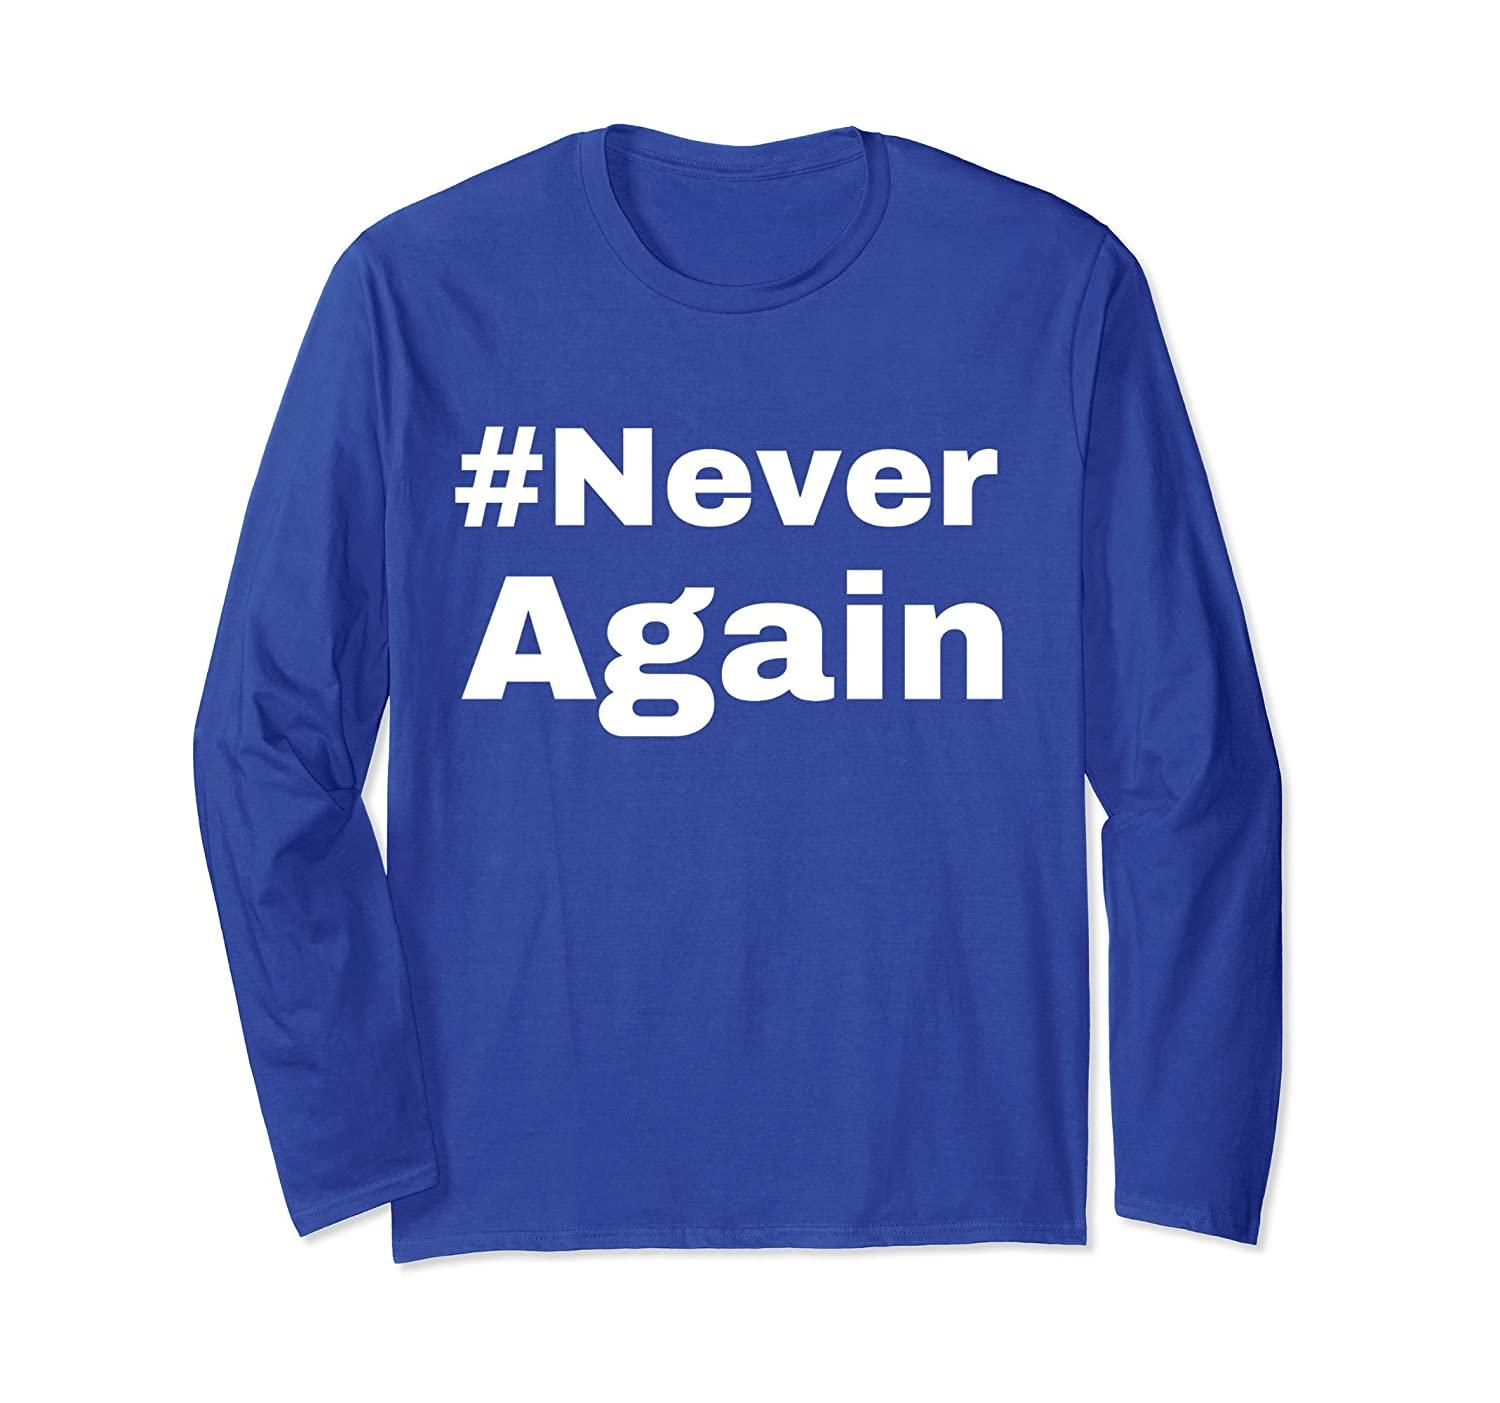 #NeverAgain - March for Lives - 03.24.2018, March 24 Shirt-ah my shirt one gift